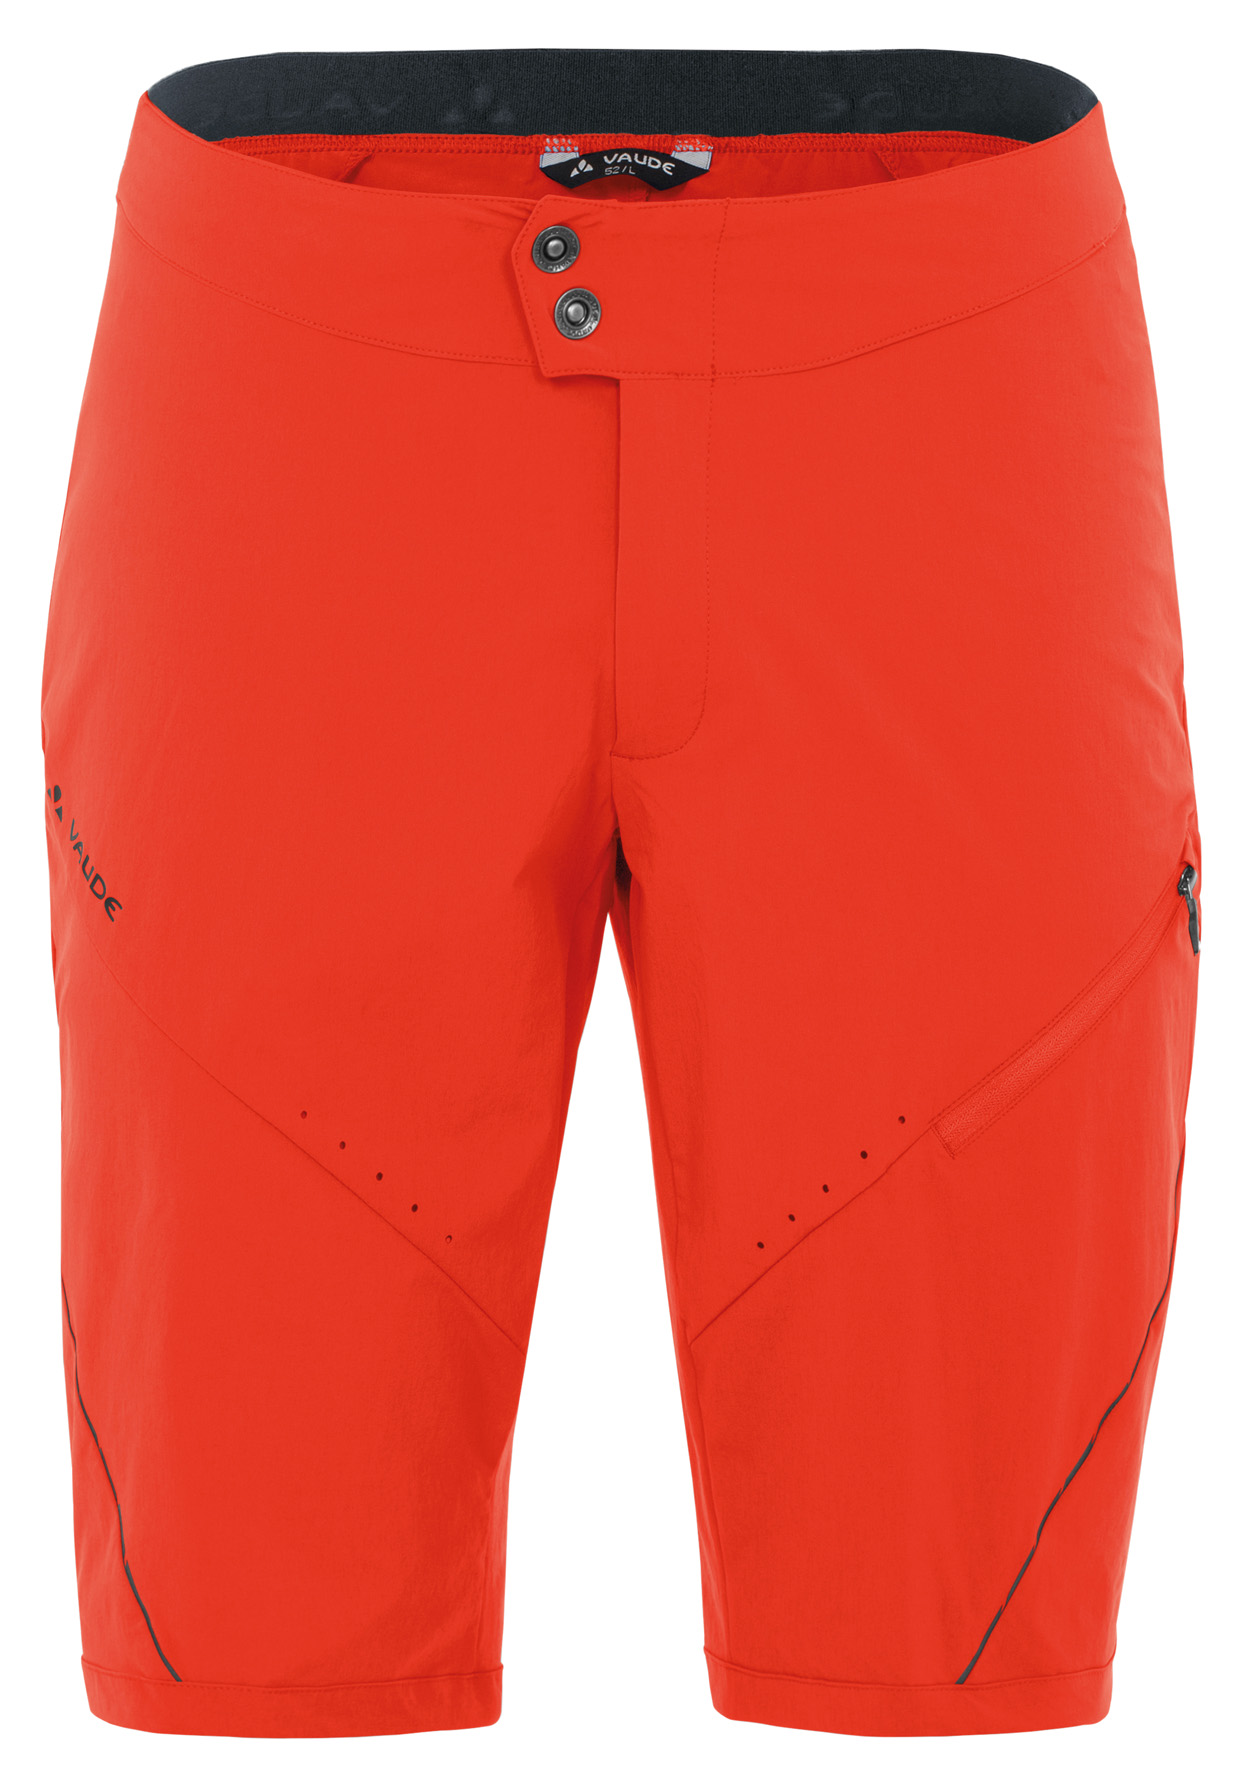 Men´s Topa Shorts glowing red Größe XS - schneider-sports